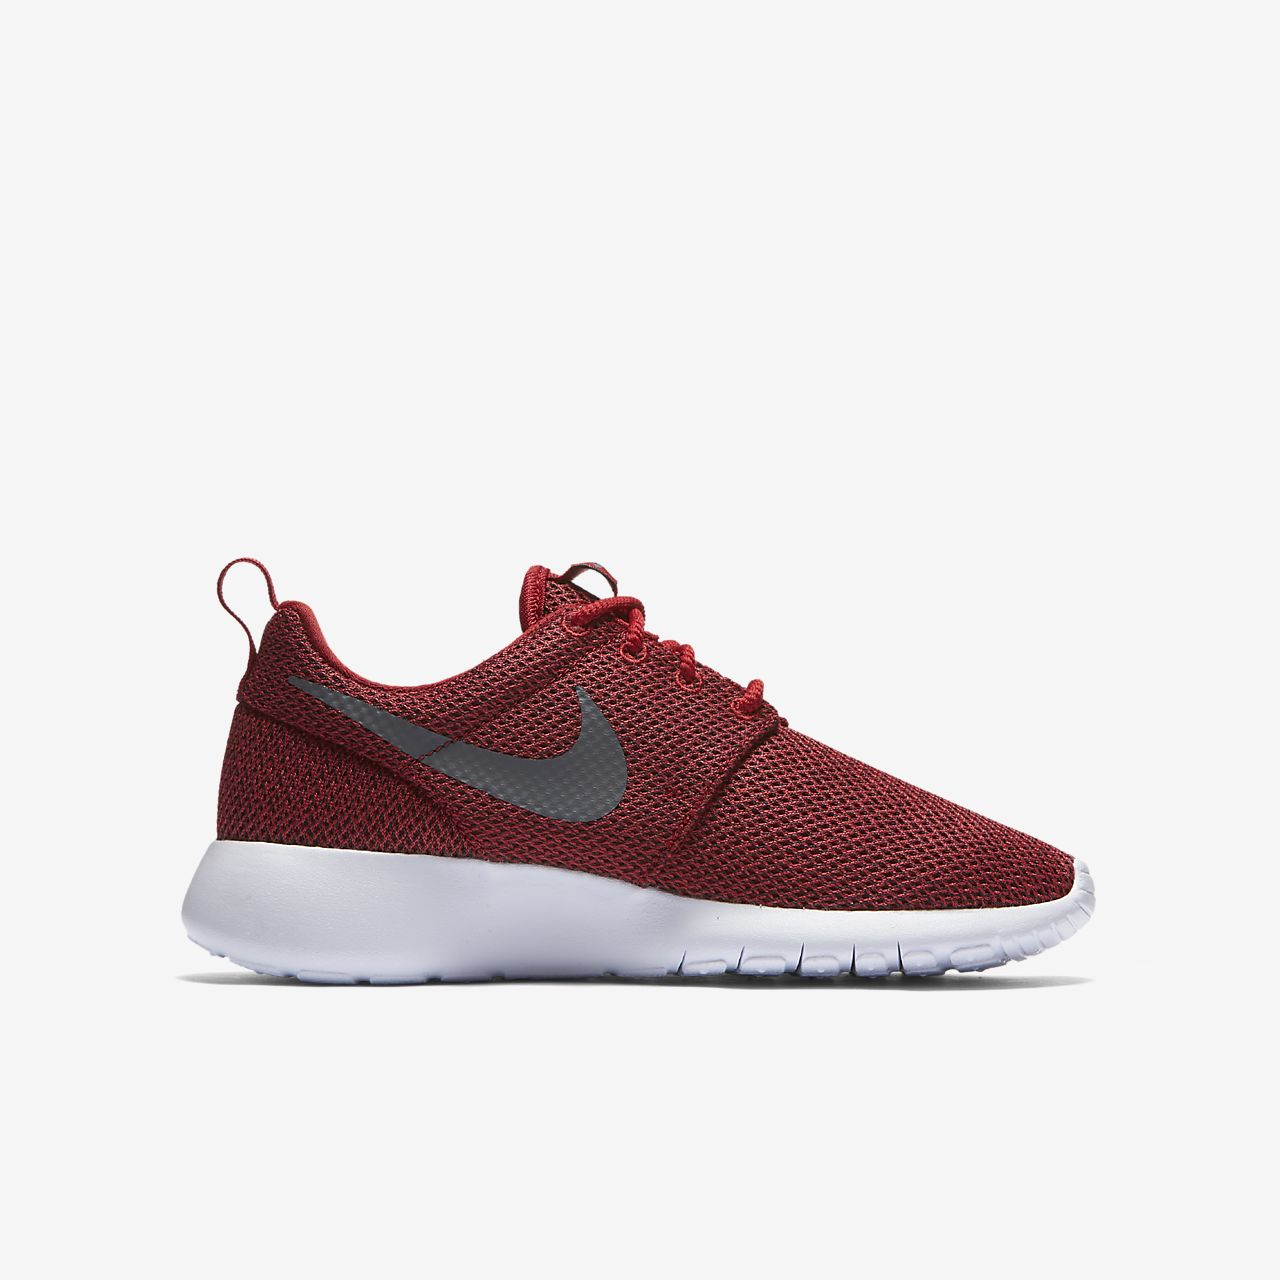 nike shoes roshes boussole en 919509